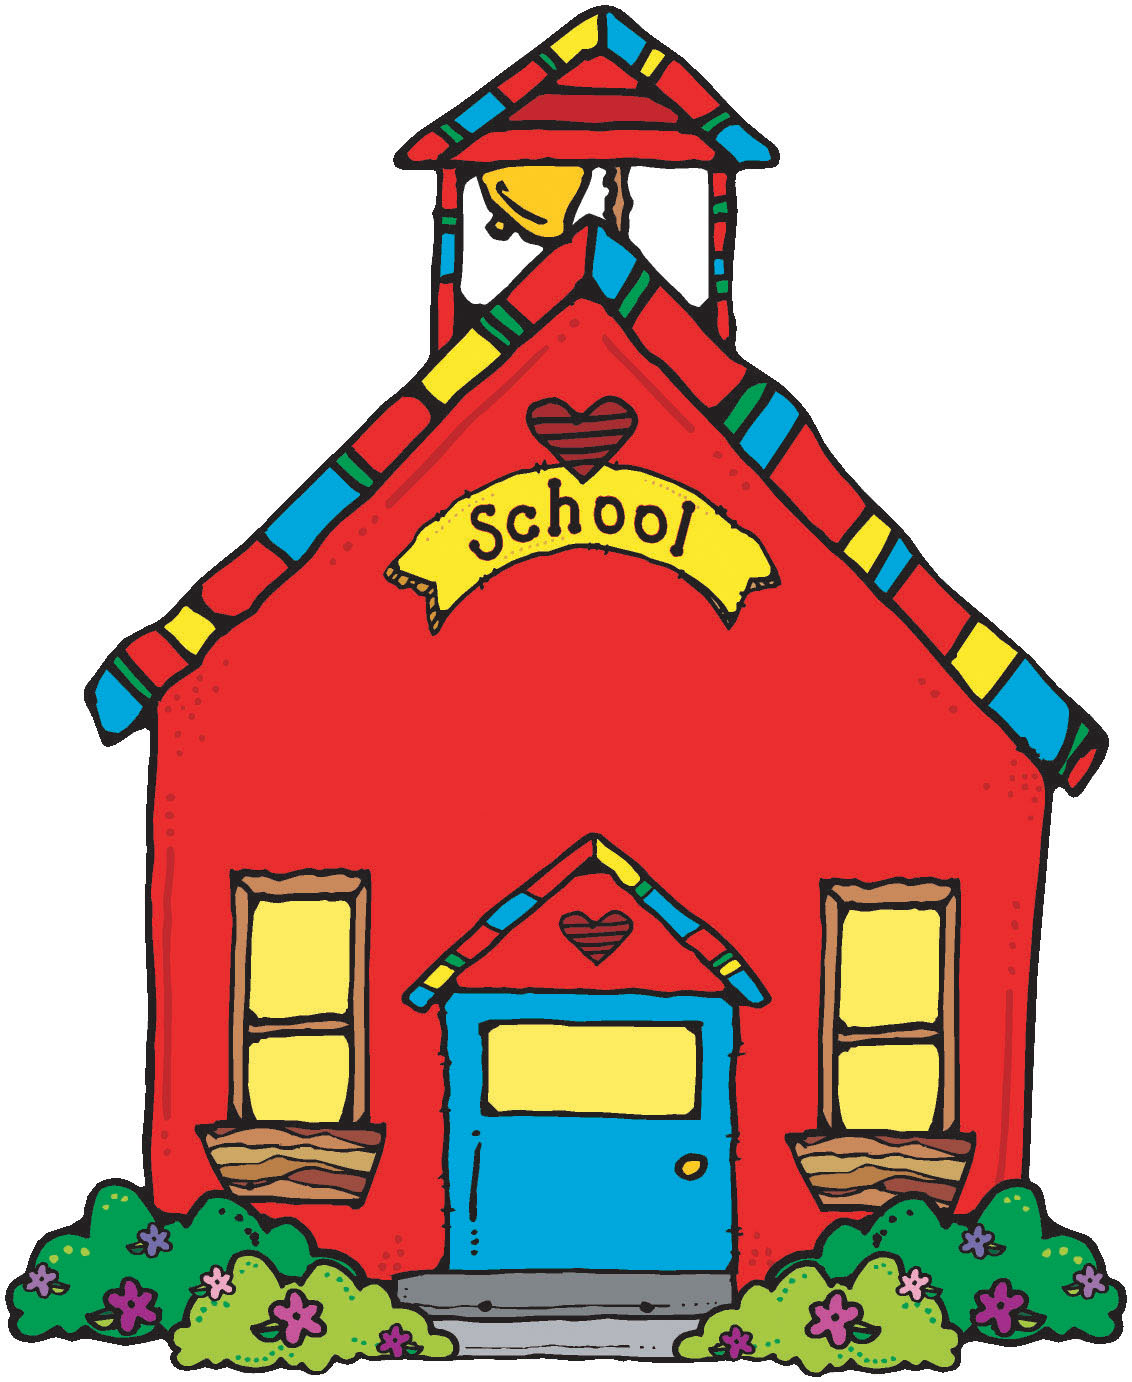 23 Schoolhouse Clip Art Free Cliparts That You Can Download To You